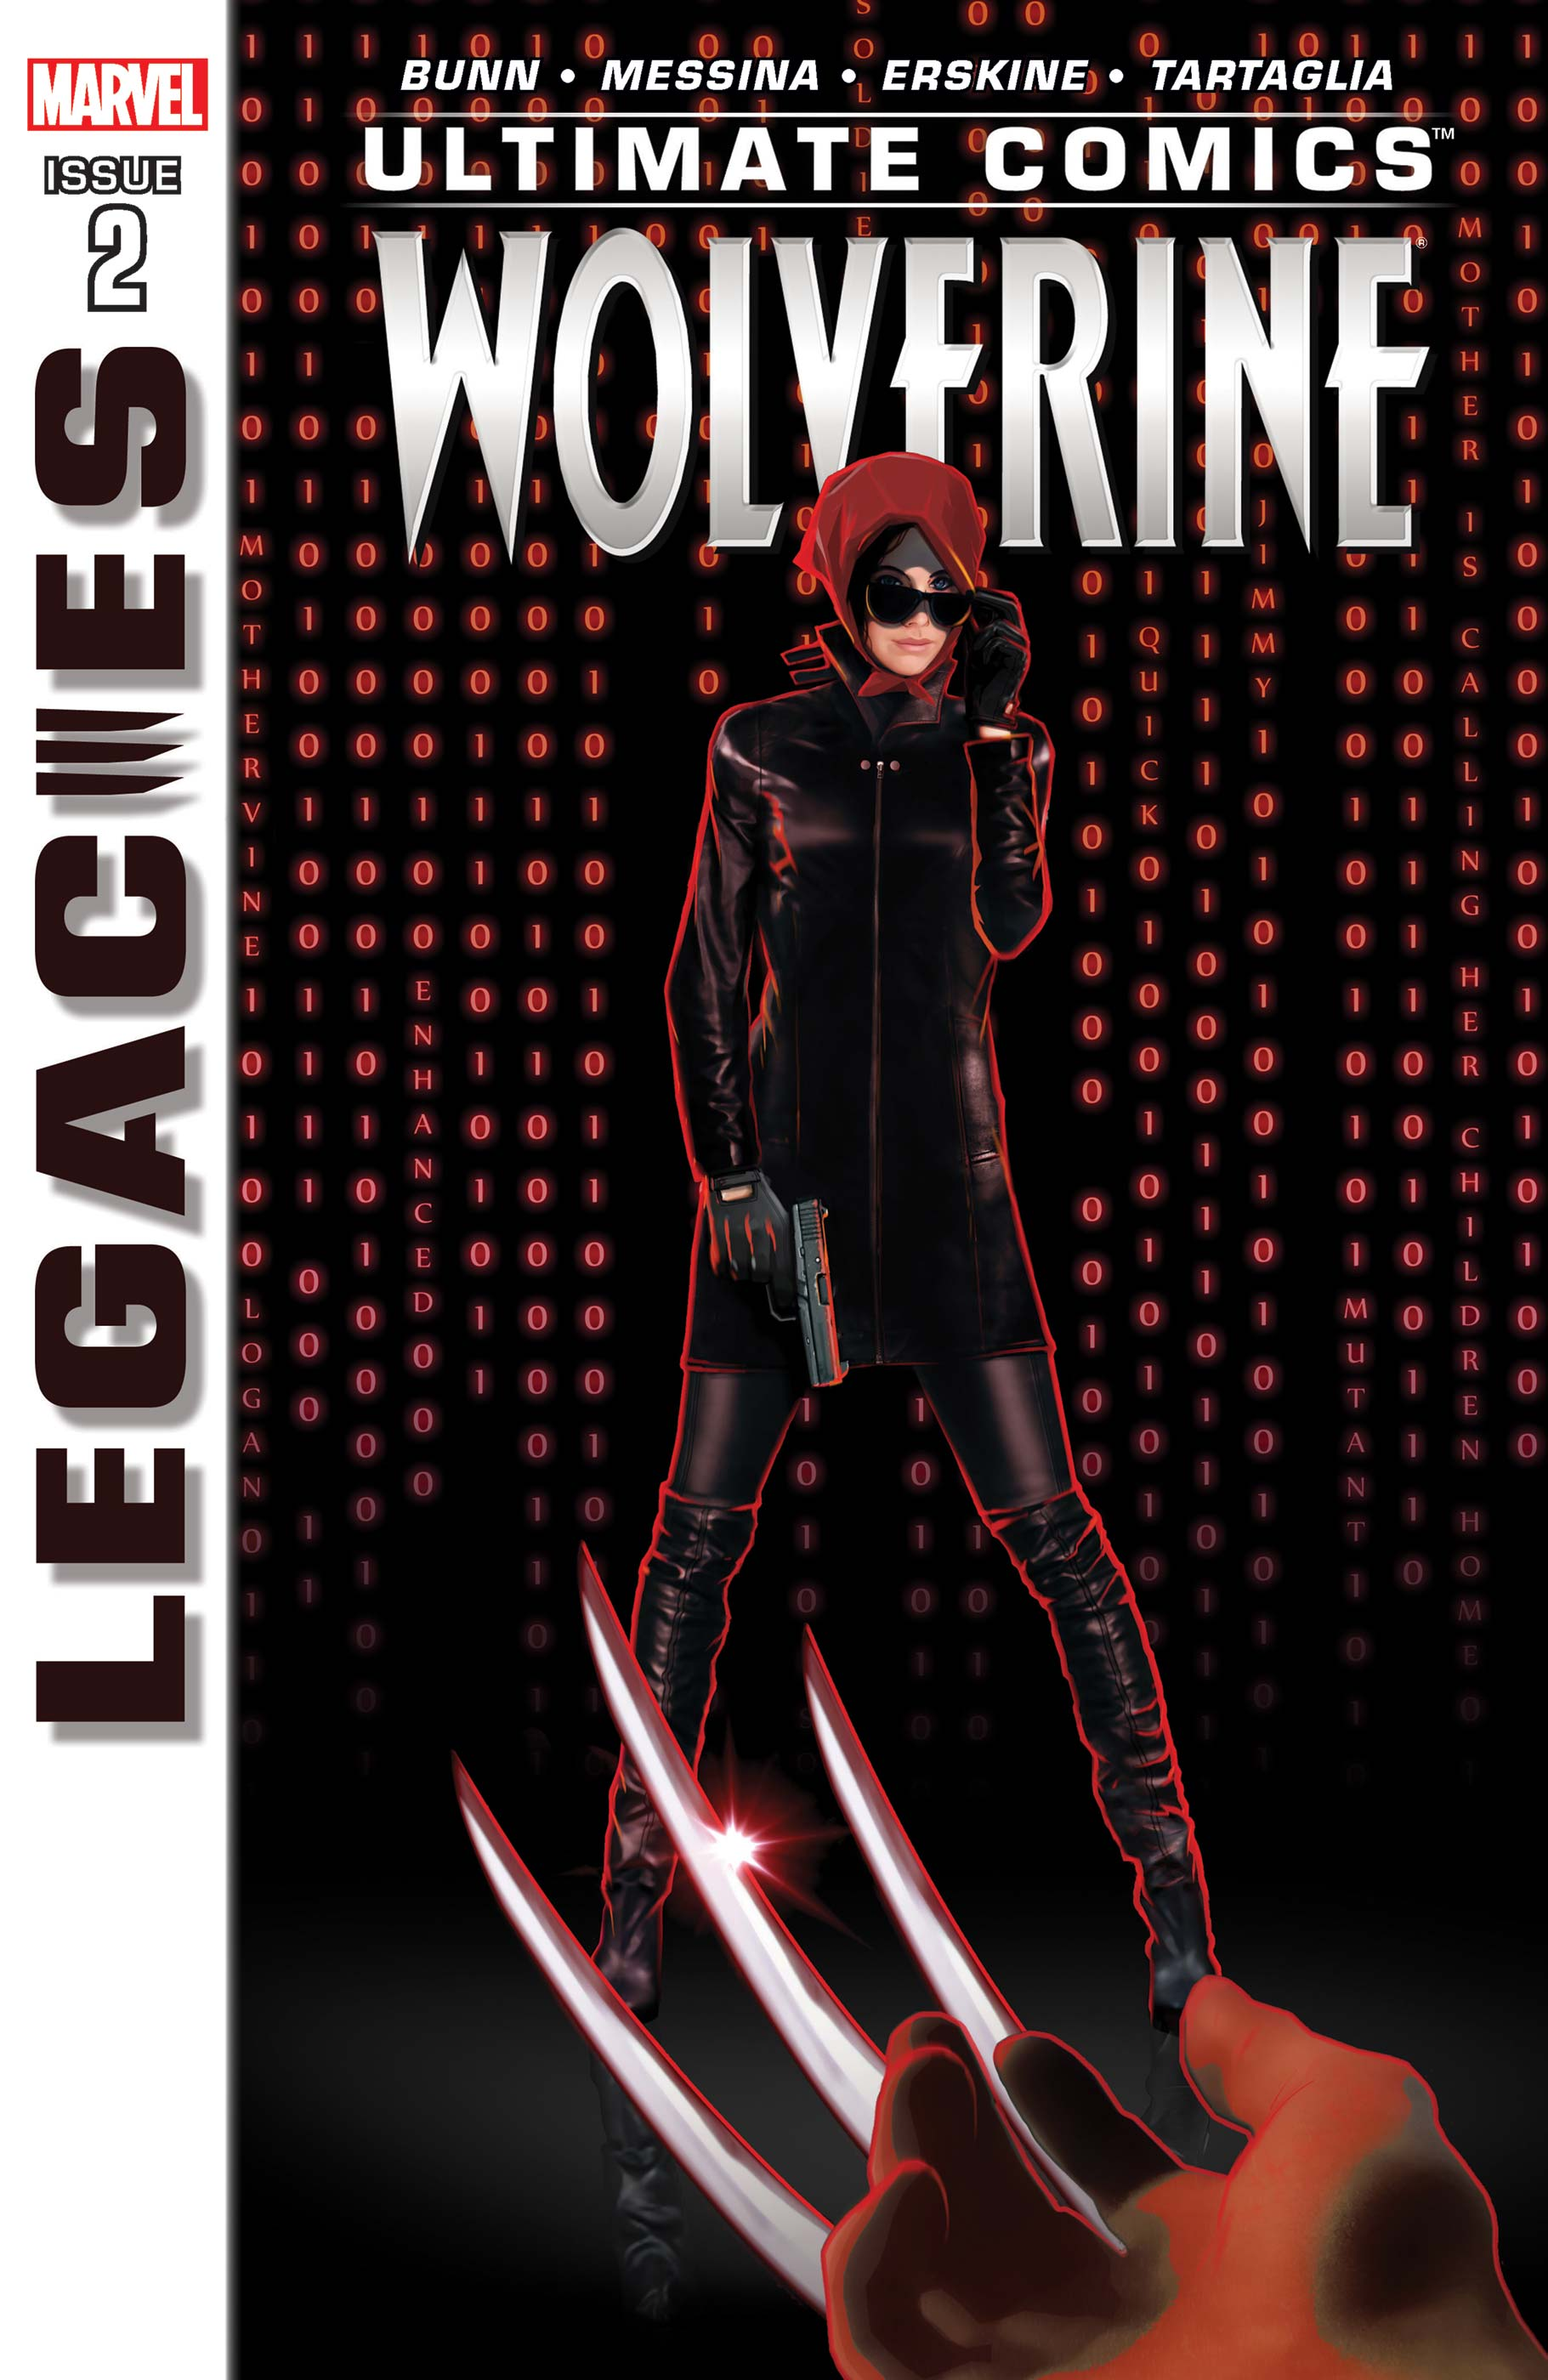 Ultimate Comics Wolverine (2013) #2